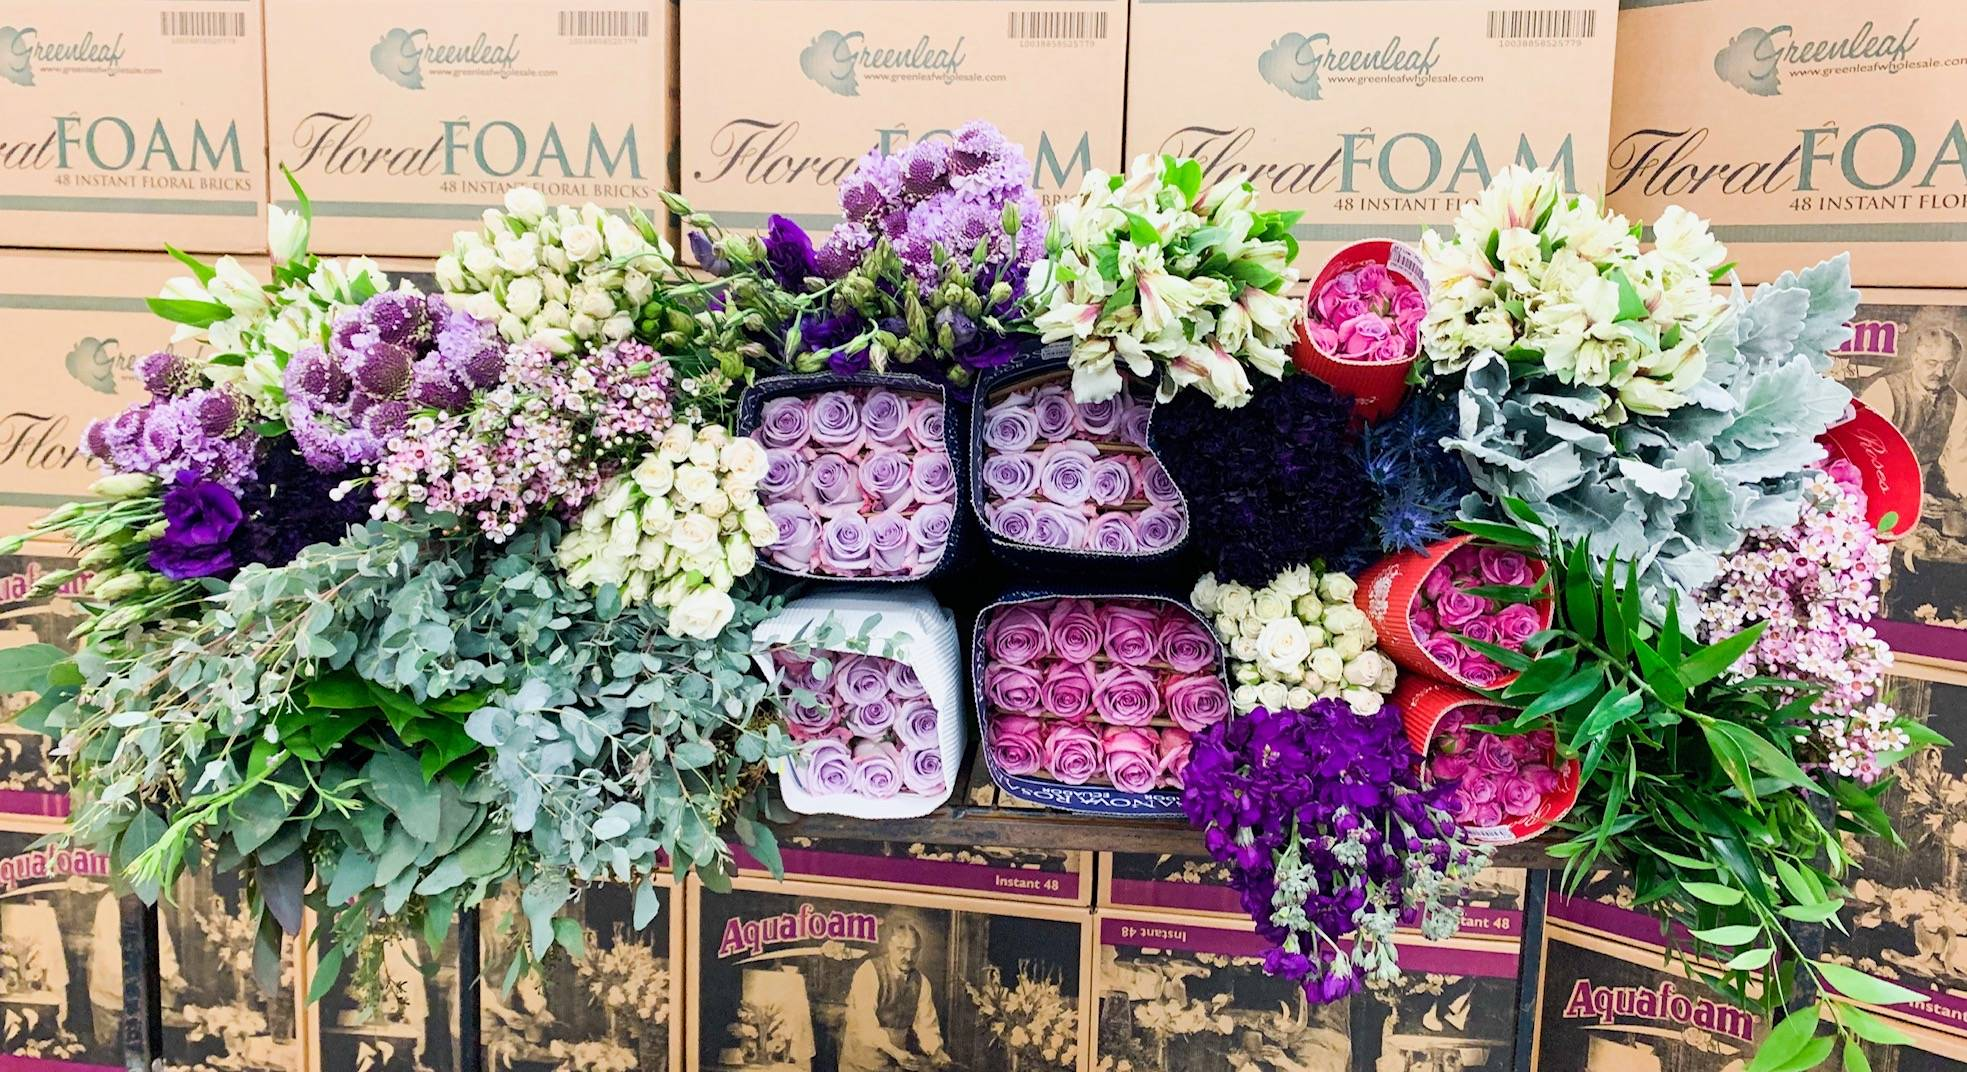 Ocean song, Cool water roses, lavender scabiosa, burgundy scabiosa, purple stock, dusty miller